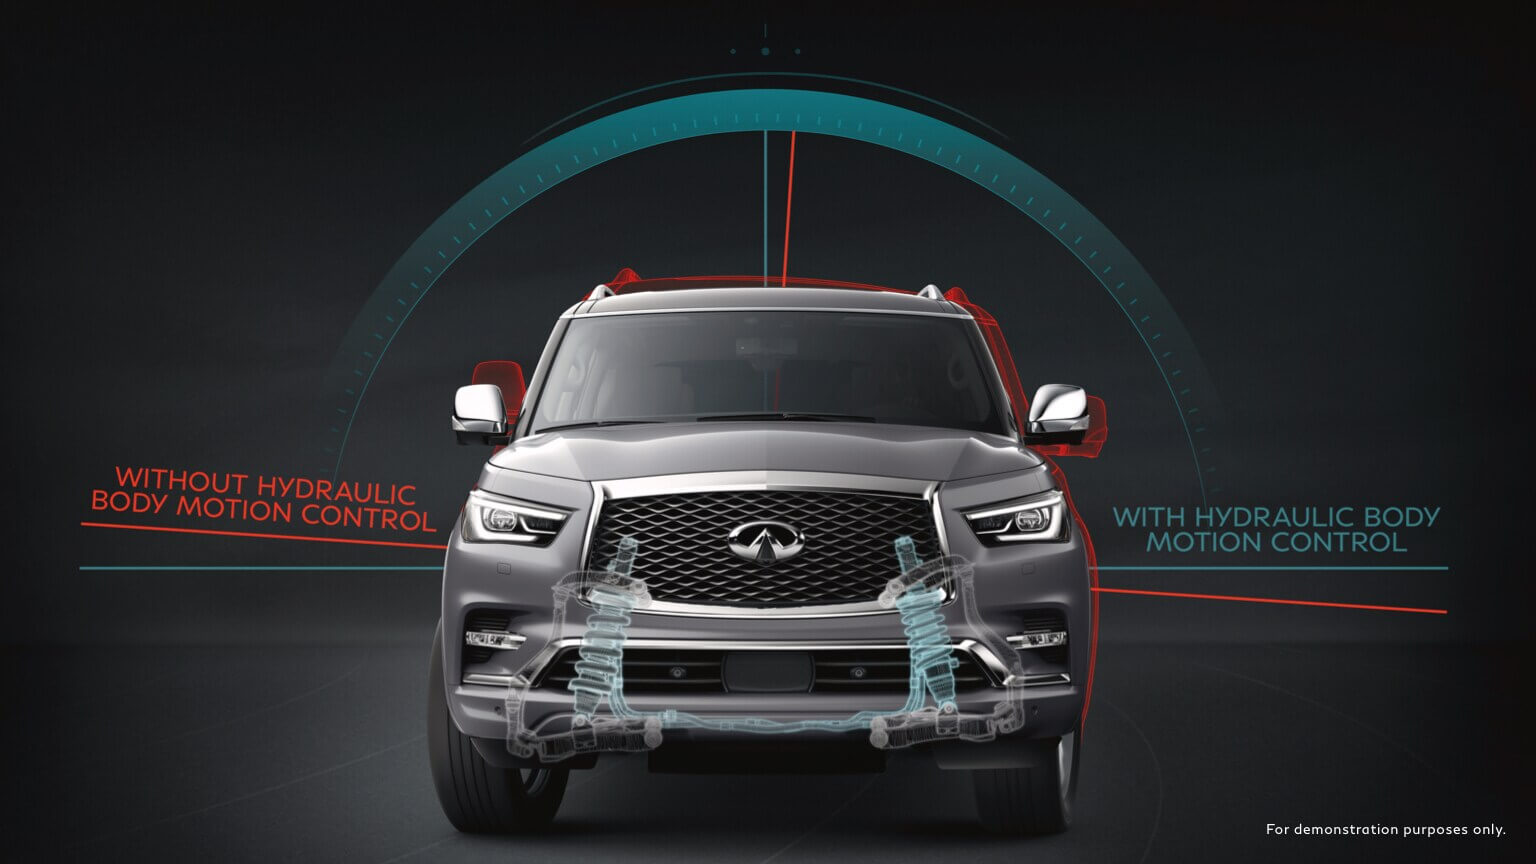 2021 Infiniti Qx80 with less vertical motion